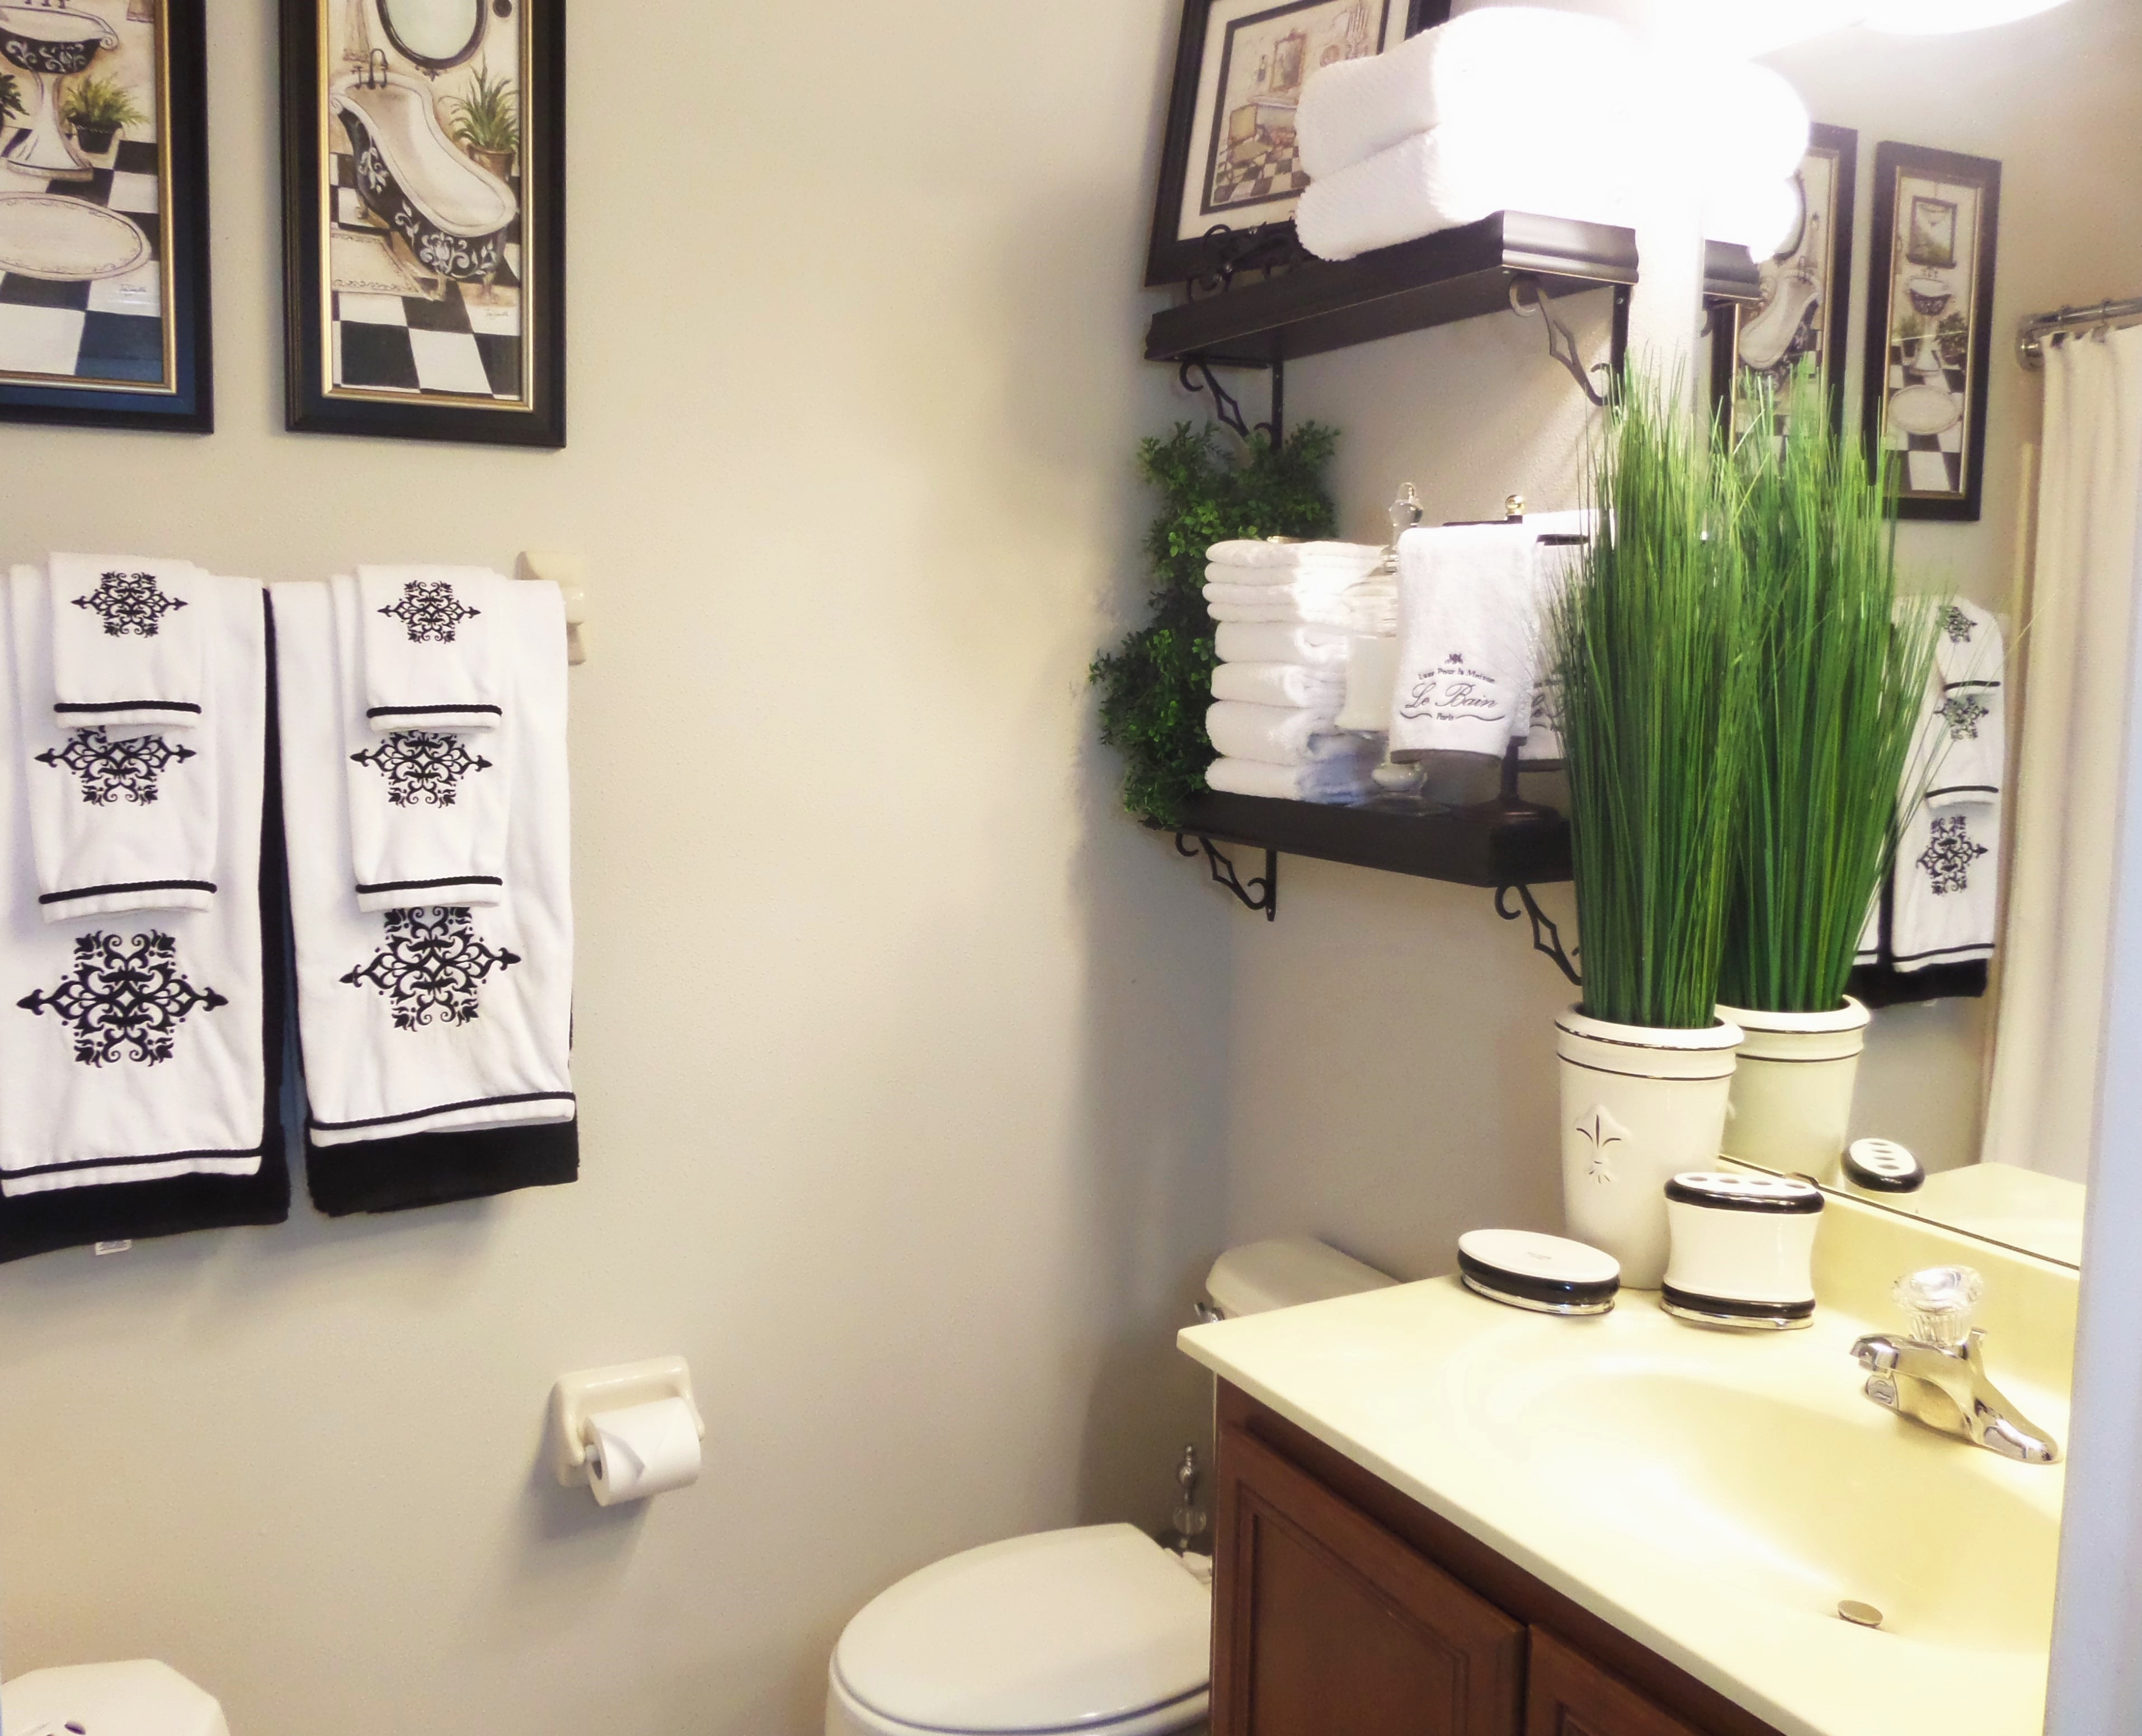 How to decorate bathroom also add ways to decorate a small bathroom also add bathroom decorating accessories and ideas also add pictures of small bathrooms